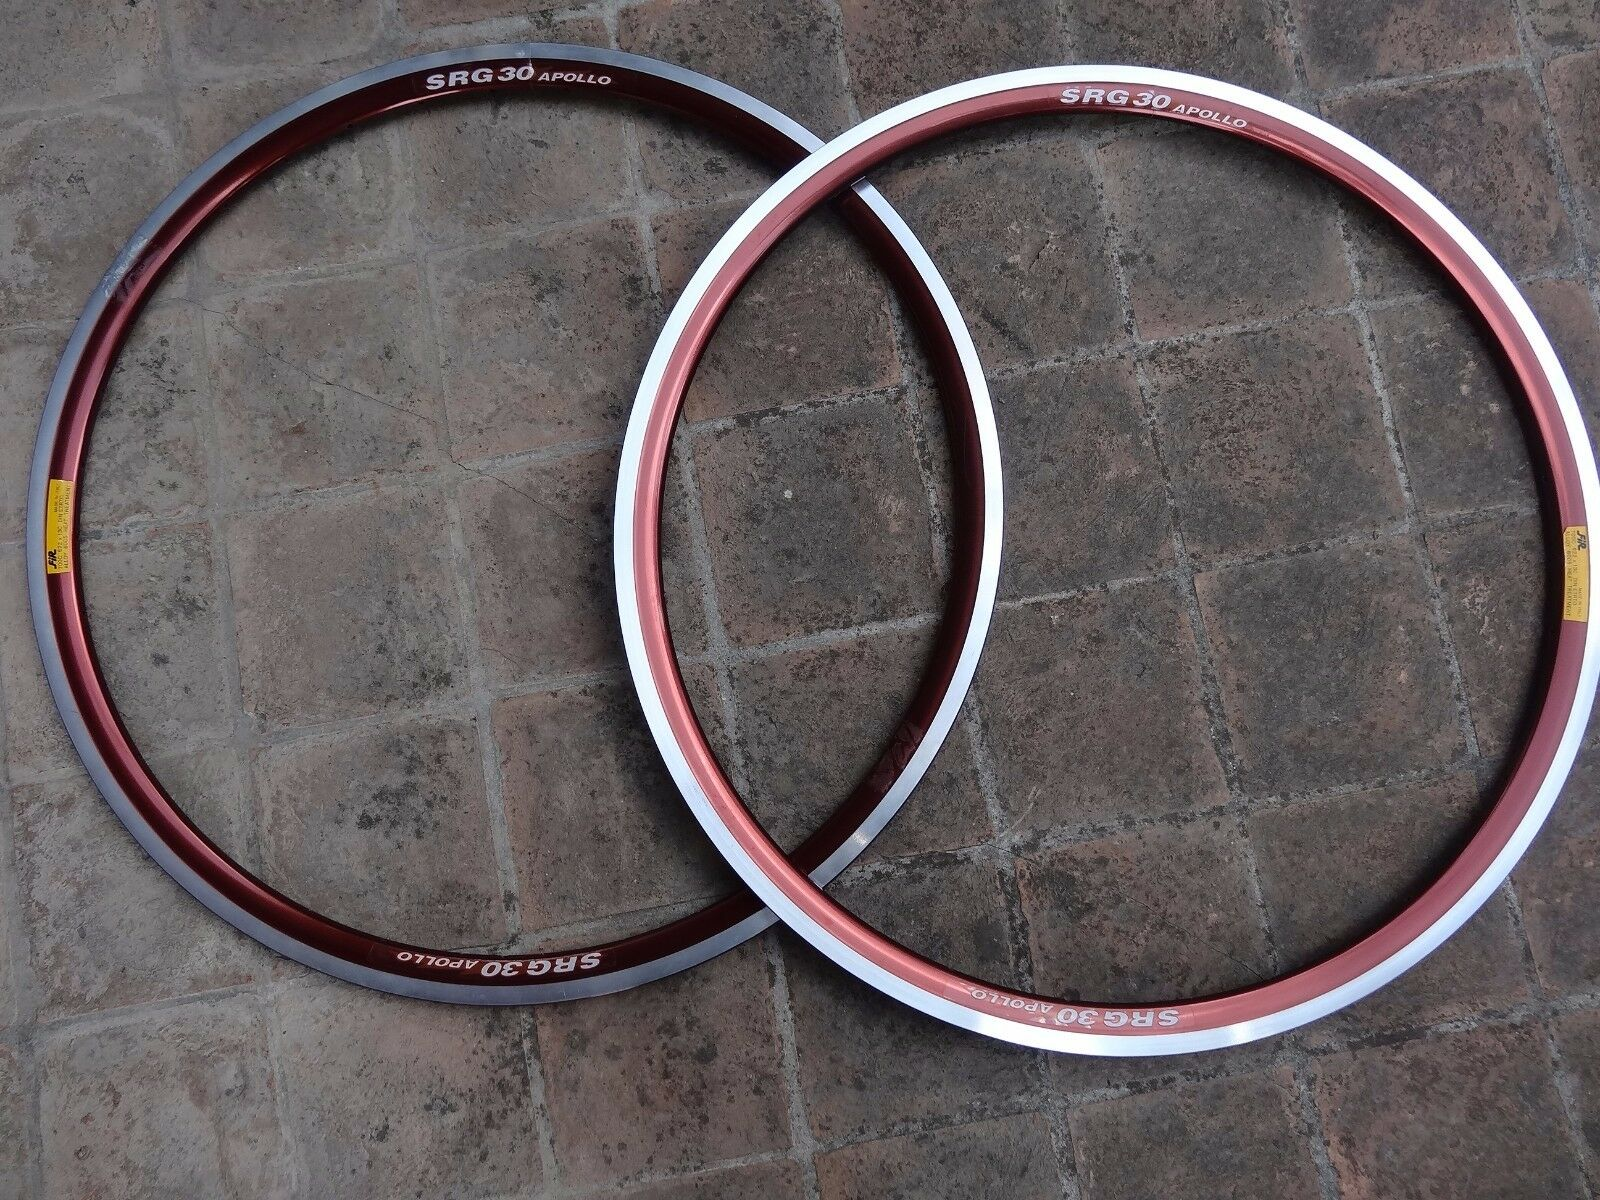 NOS FIR SRG30 Apollo pair rims 700c 28   copper anodized 36 hole for clincher